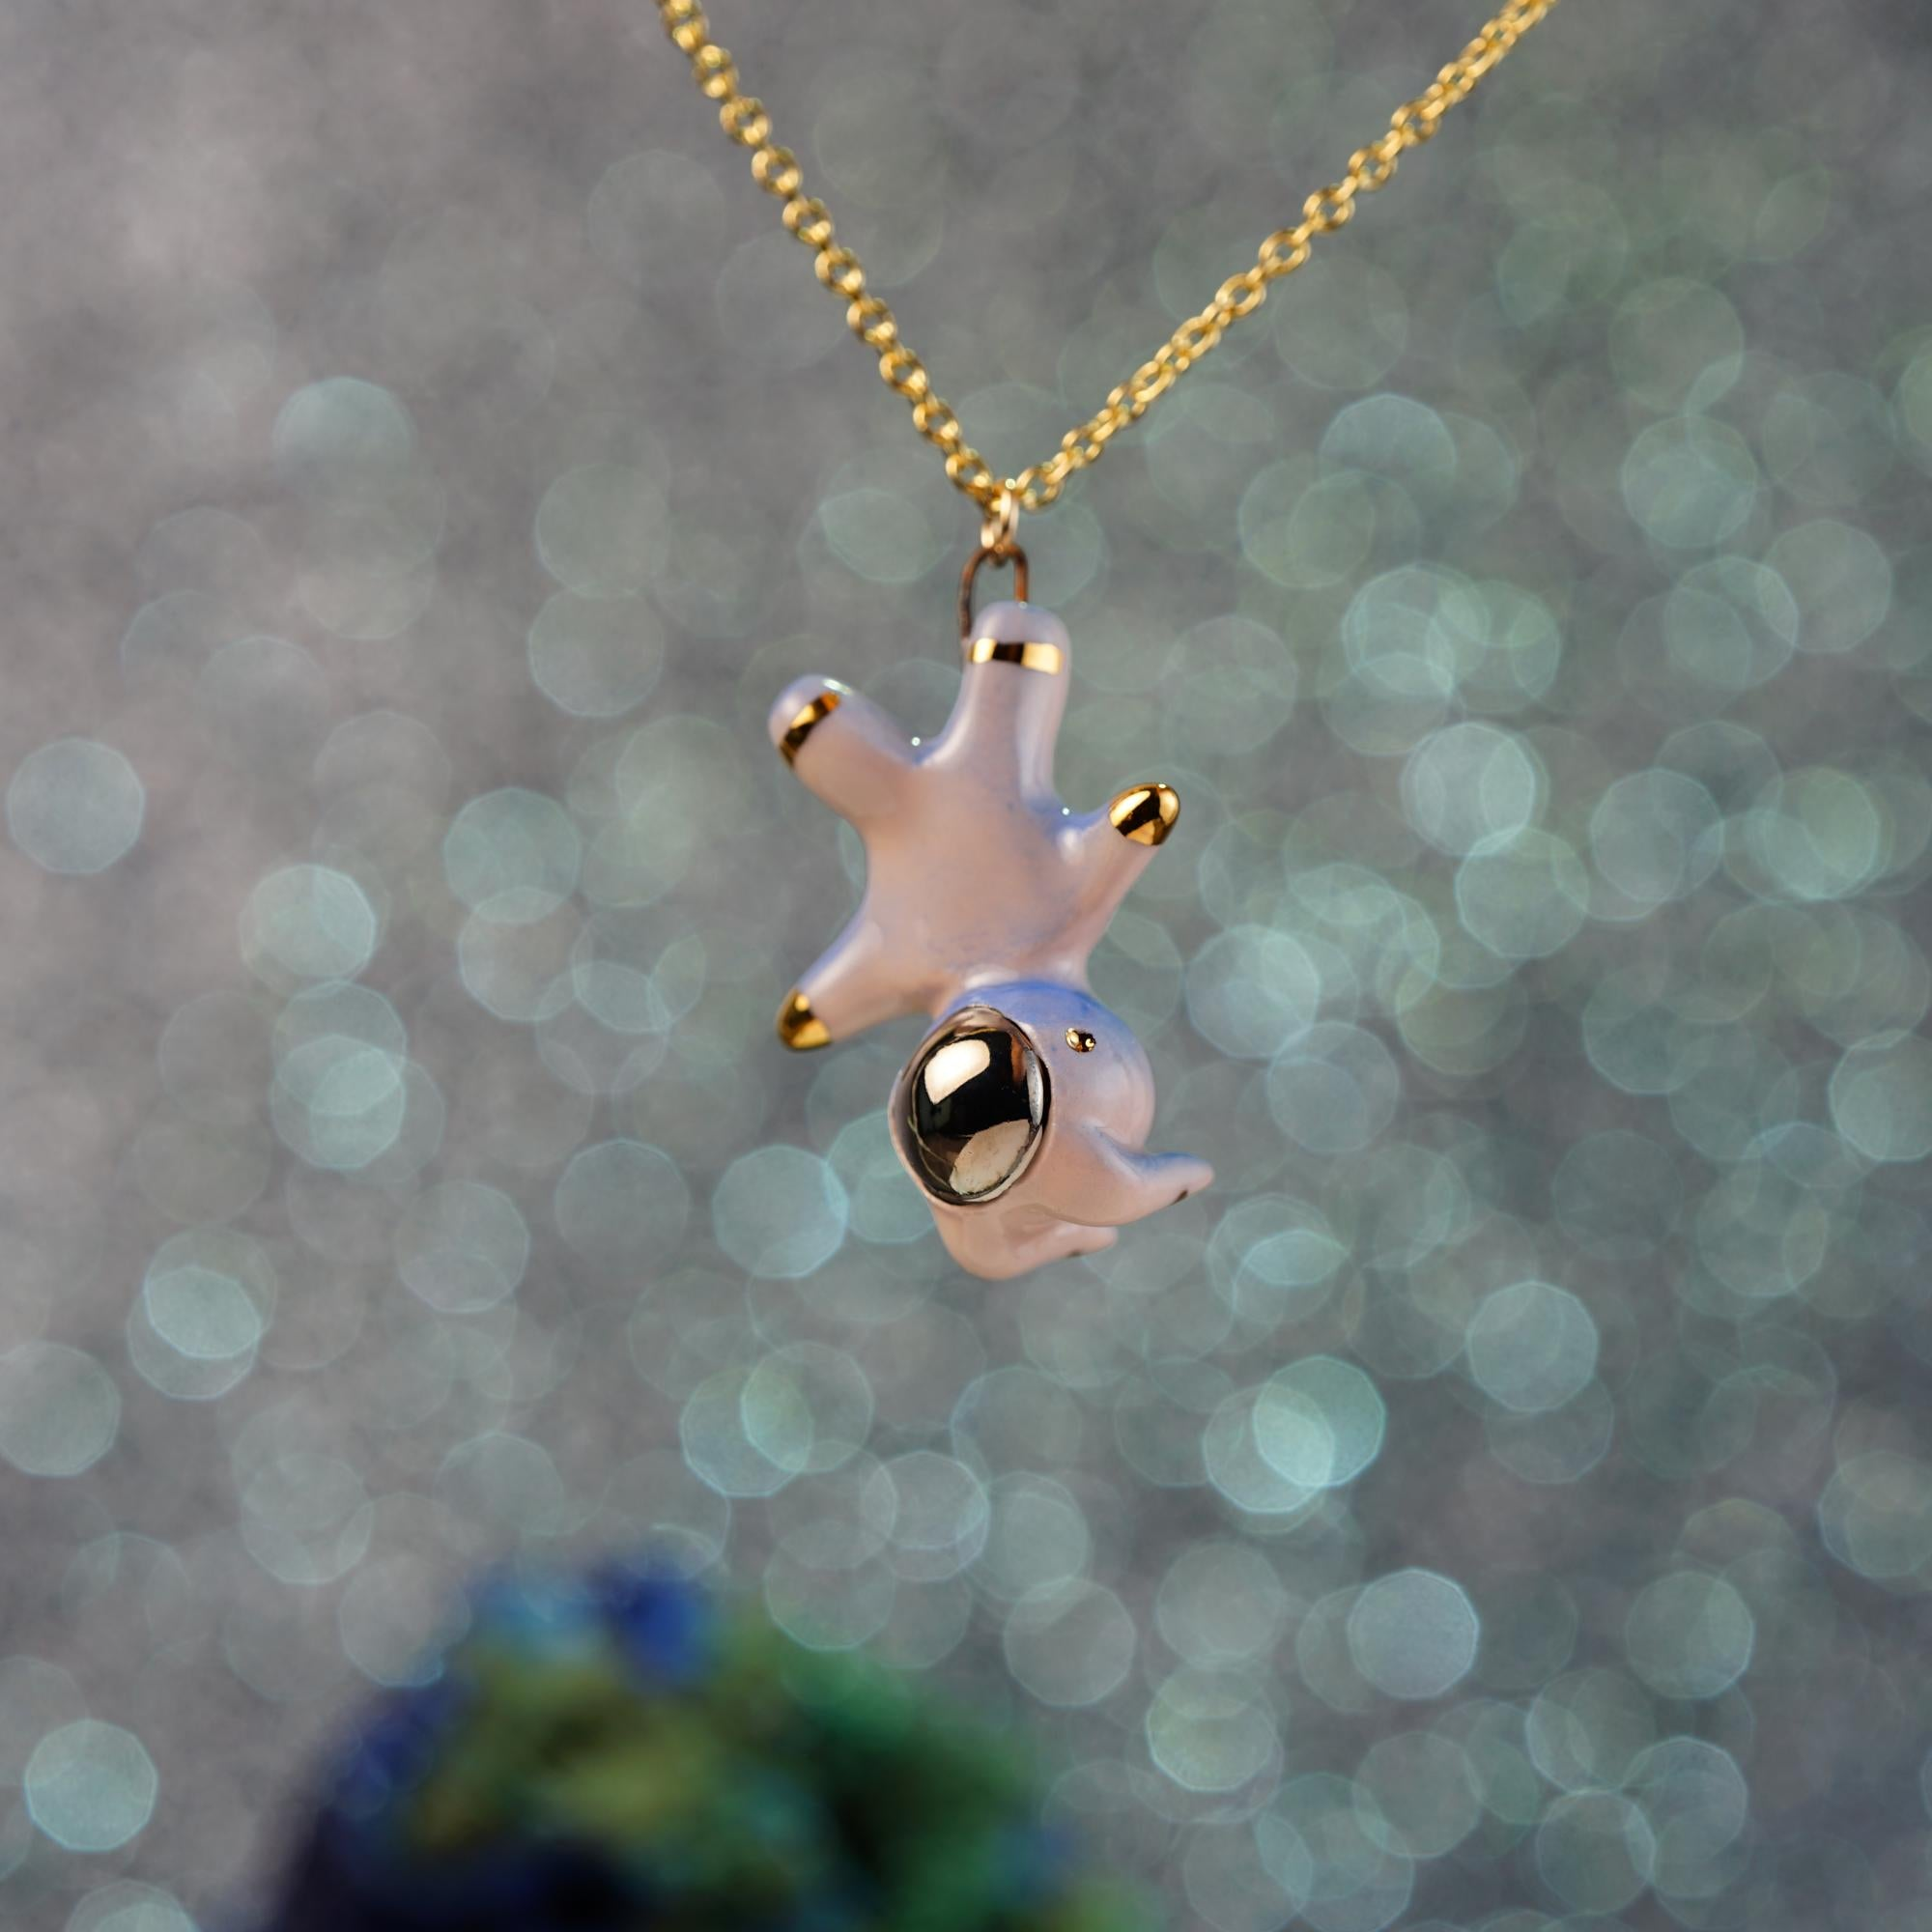 Floating Bunnynaut Necklace